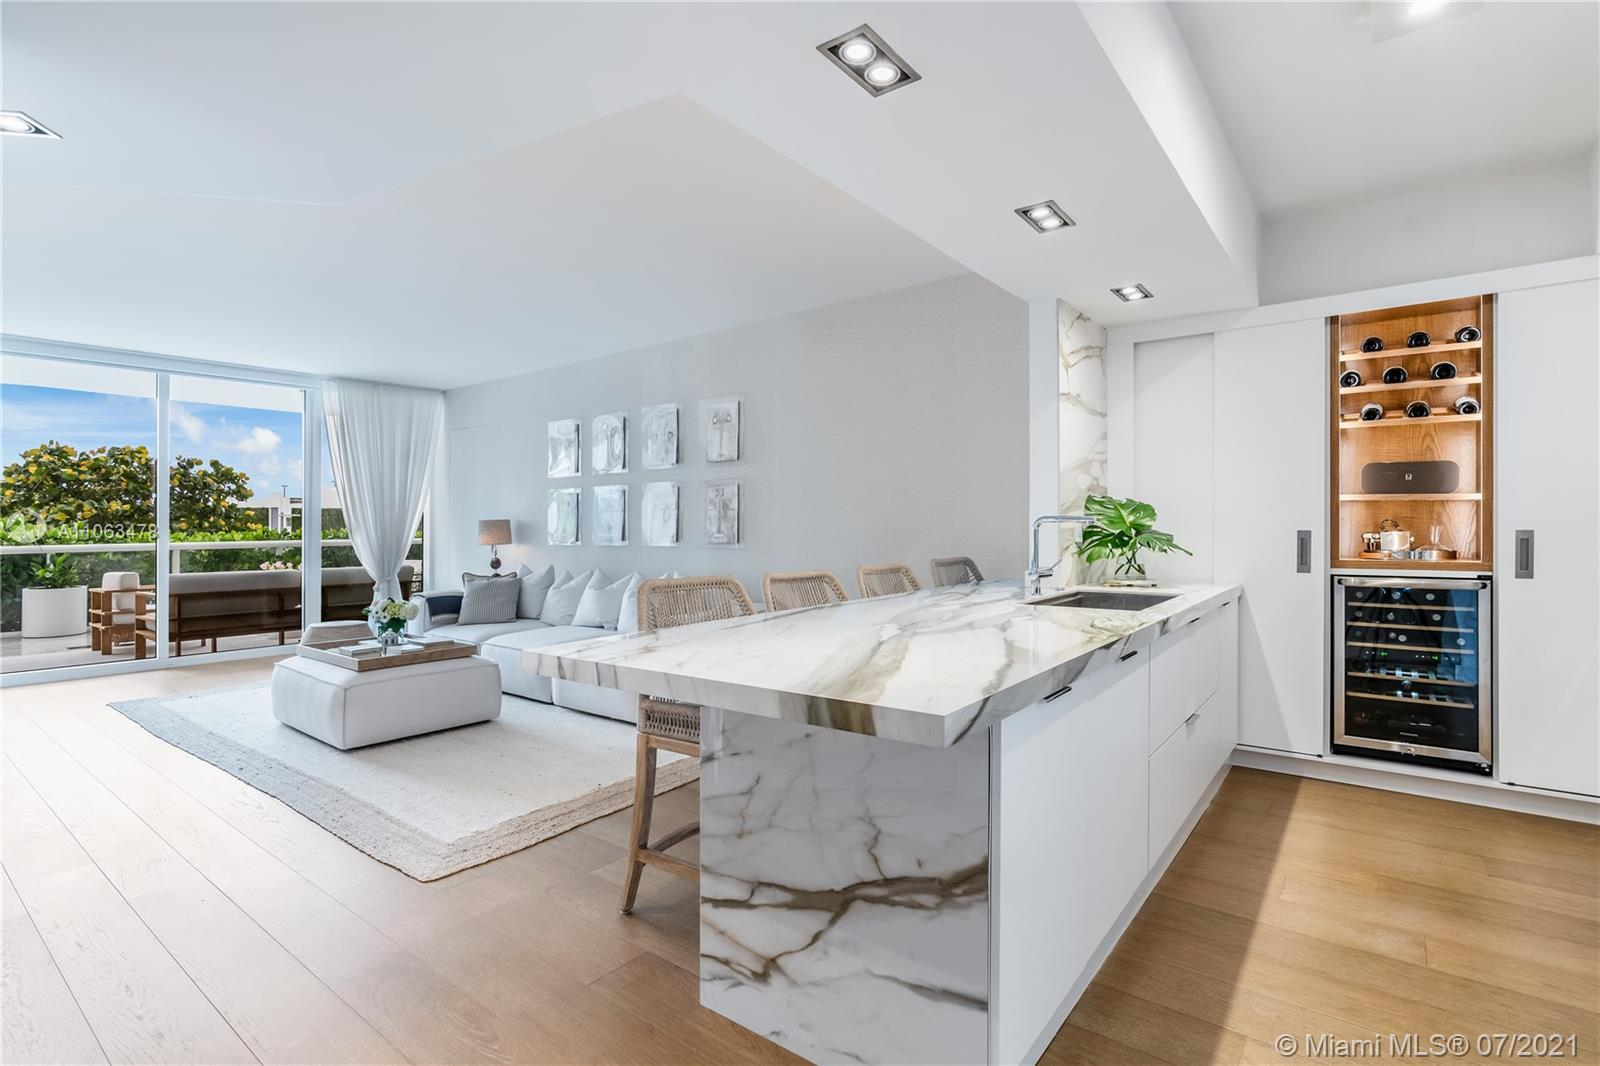 Newly Renovated 2021, modern Lanai residence offering unique 04-line floor plan in the heart of SoFi